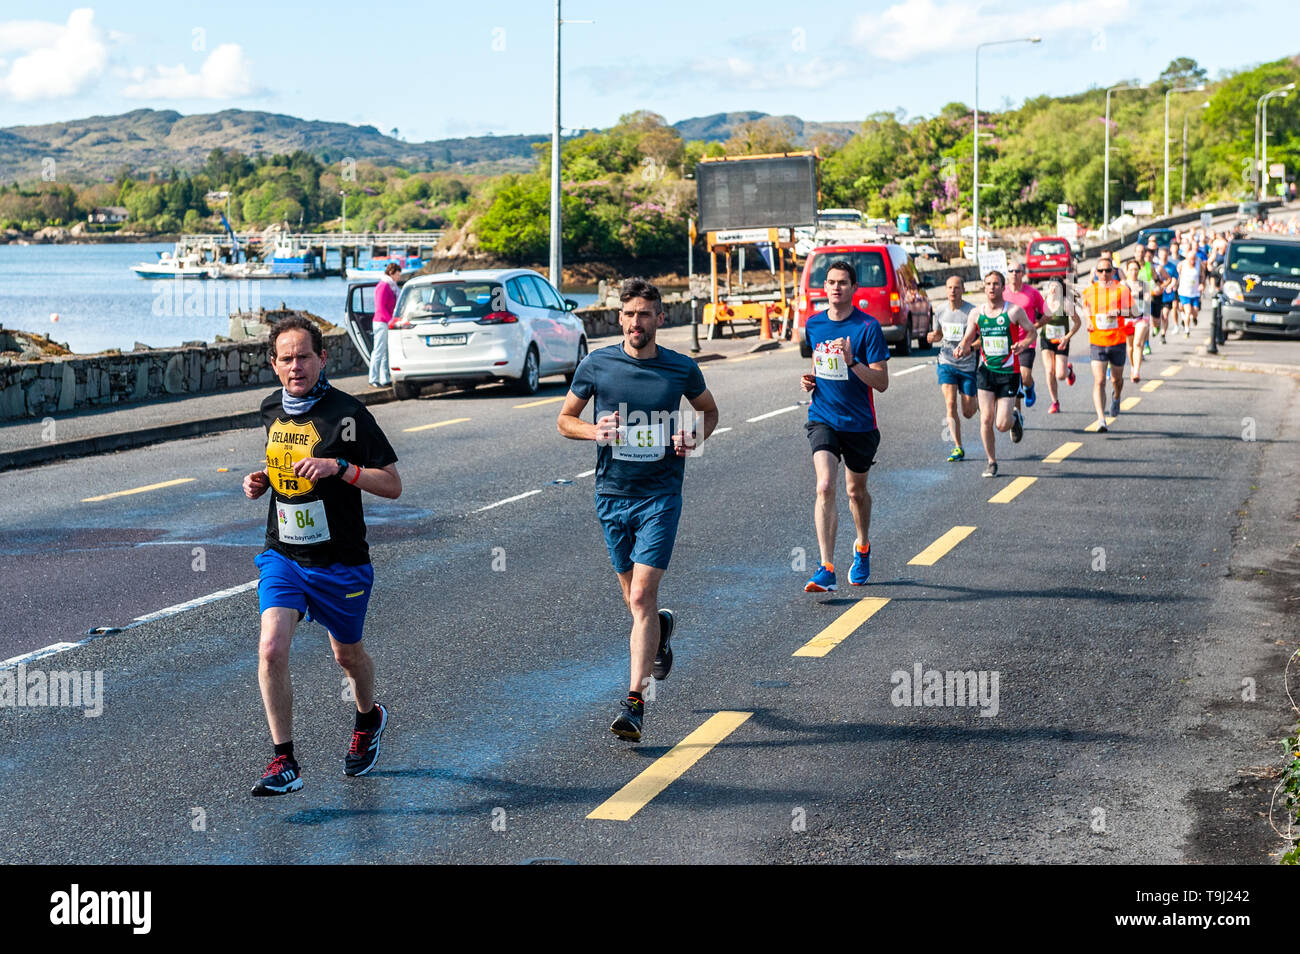 Glengarriff, West Cork, Ireland. 19th May, 2019. The pack races from Glengarriff just agfter the start of the annual Bay Run.  The race, which is a half marathon, runs from Glengarriff to Bantry. Credit: Andy Gibson/Alamy Live News. - Stock Image